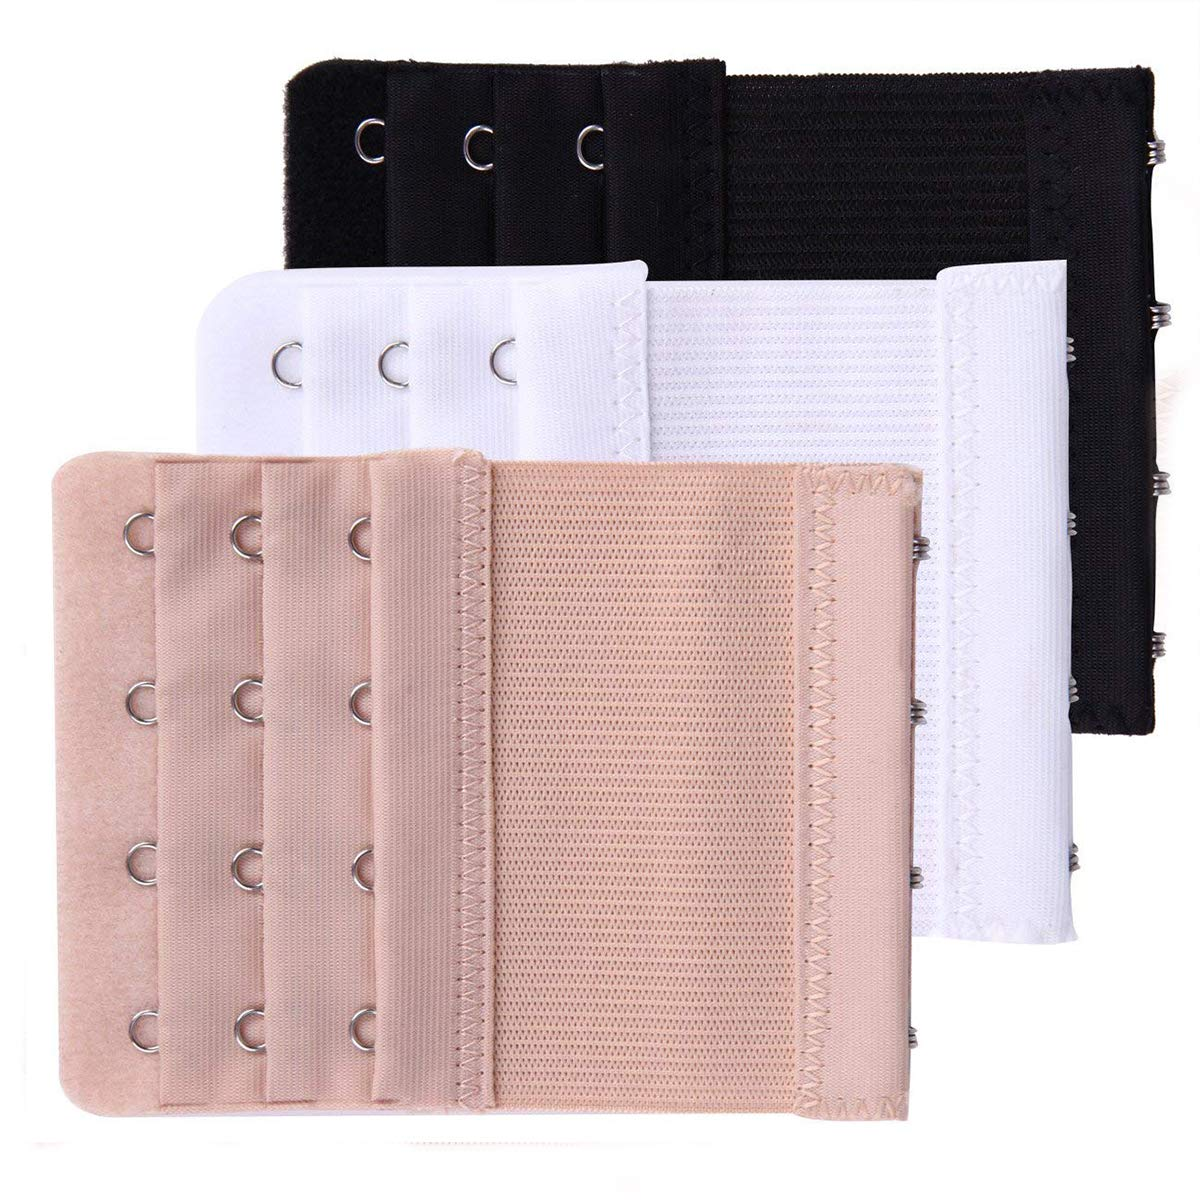 Skin Color Akstore 6 Pieces Womens Soft Comfortable Elastic Bra Extenders Bra Extension Strap 4 Hook 3 Row Ladys Bra Extender Bra Band